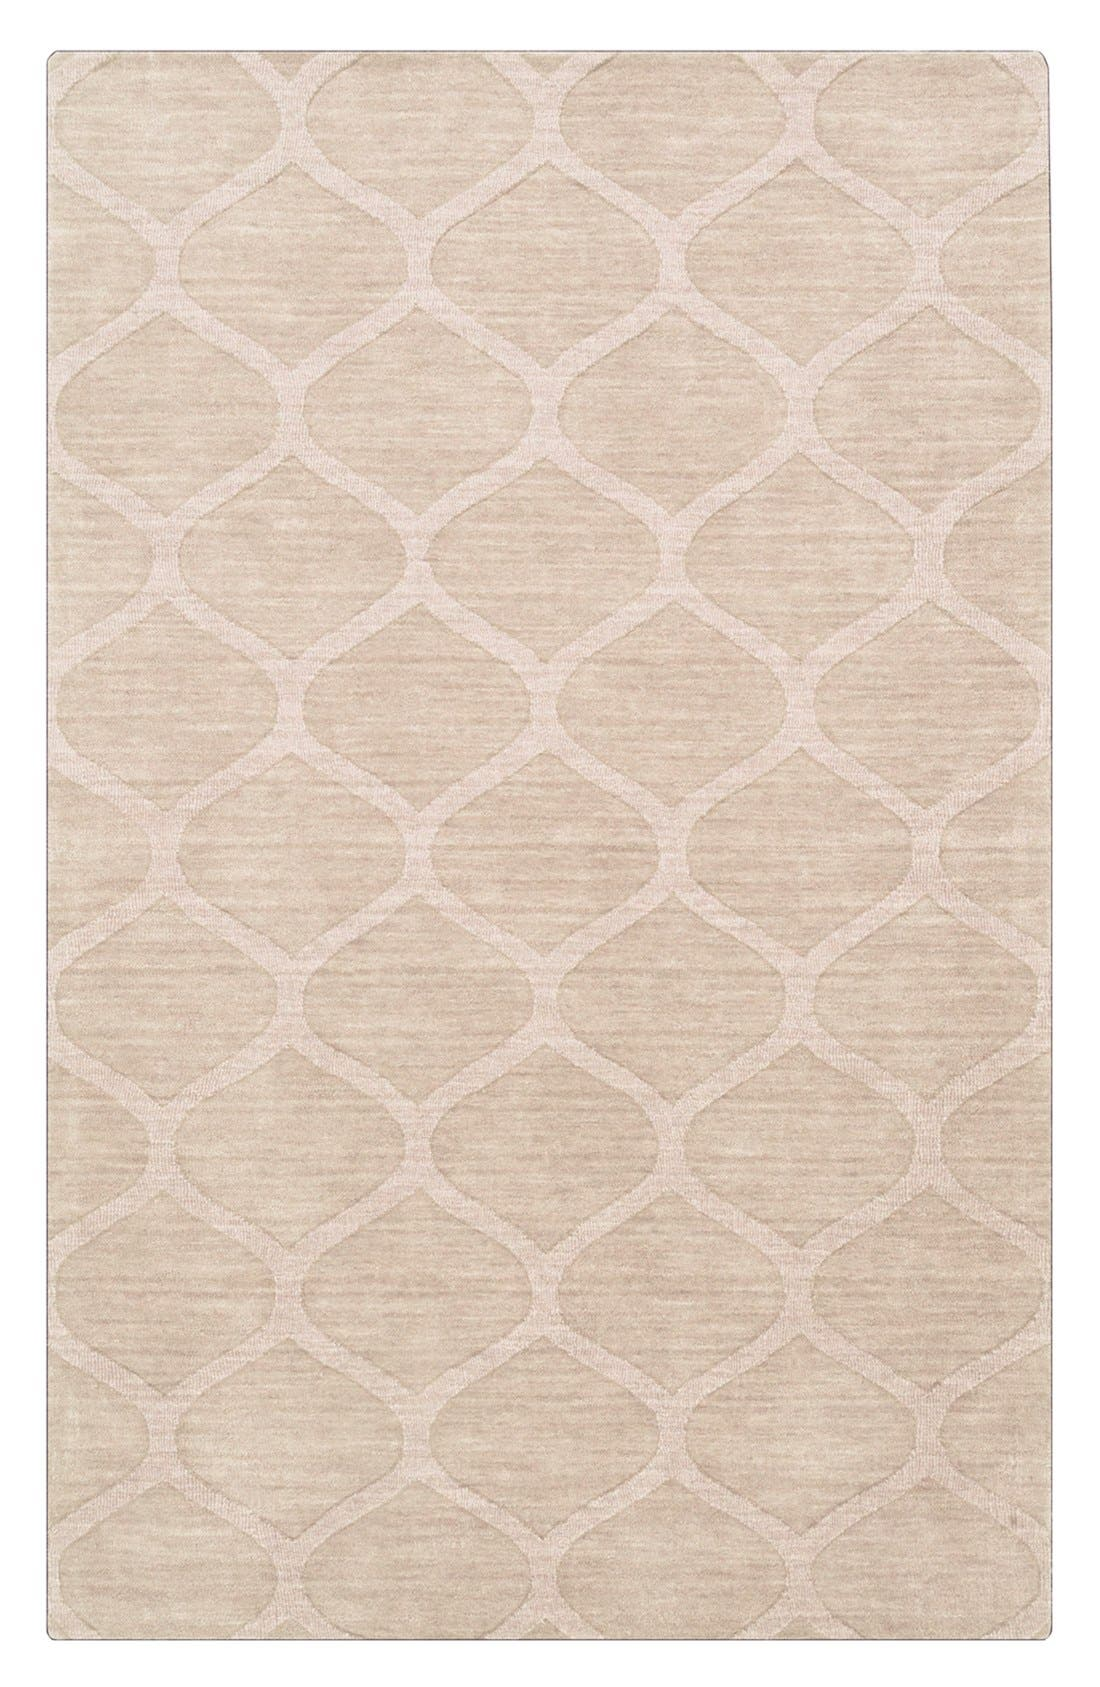 'Mystique' Hand Loomed Wool Rug,                         Main,                         color, IVORY